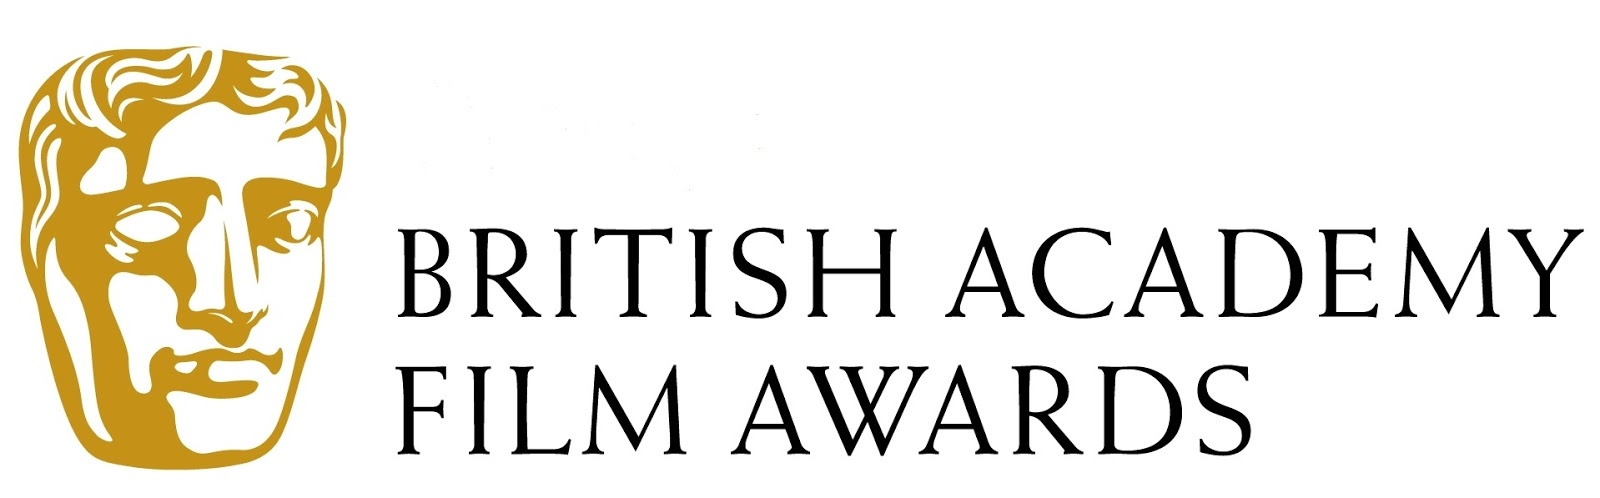 british-academy-film-awards-logo-01-1600x498.jpg